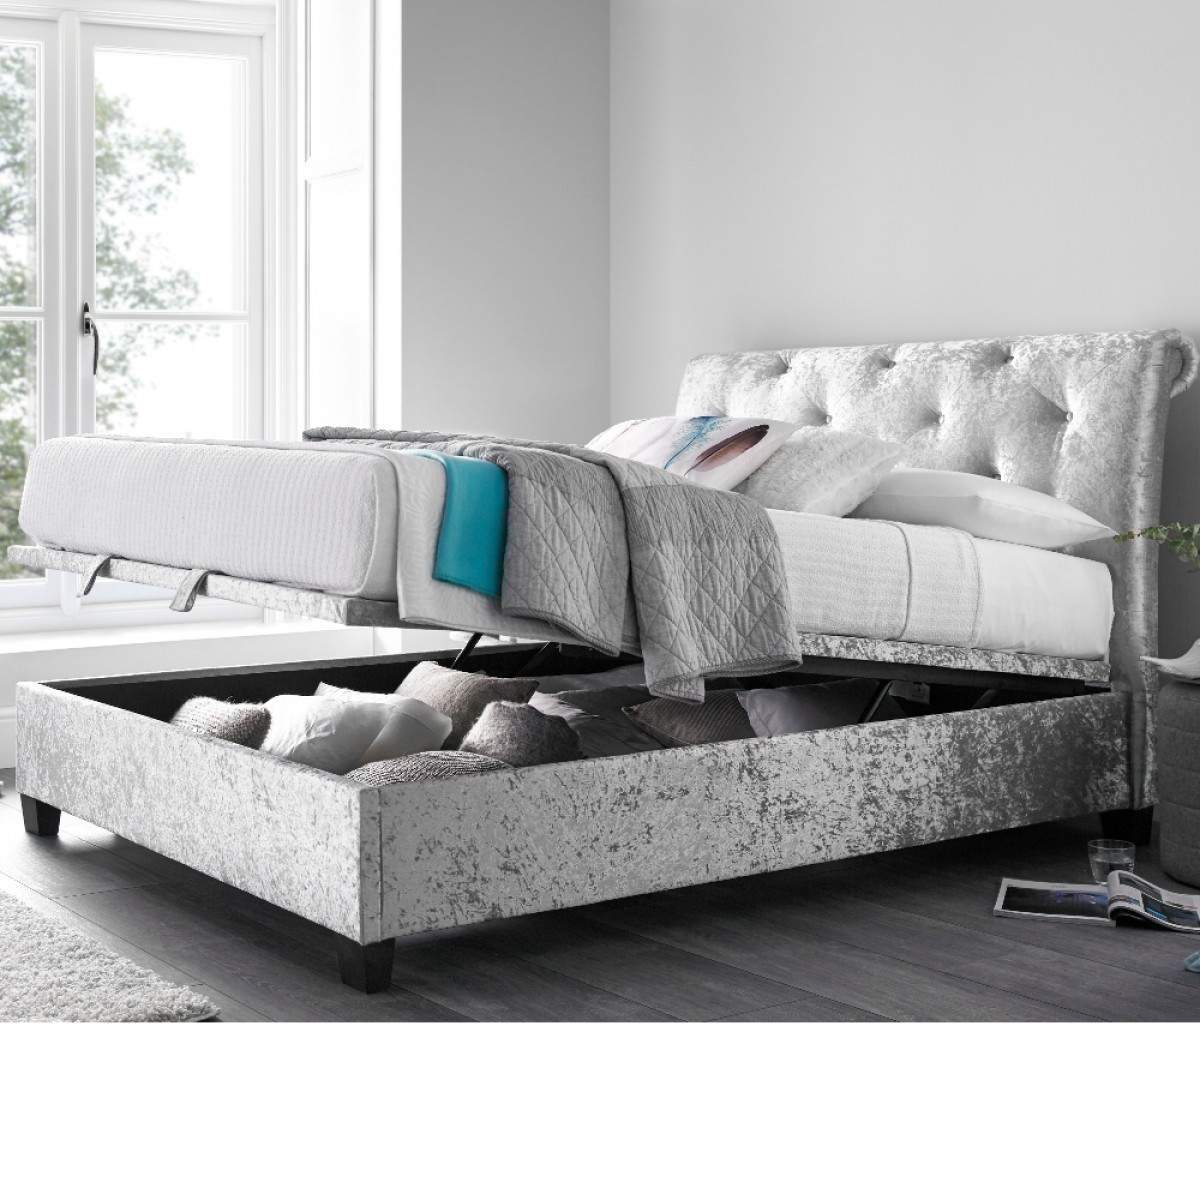 Mercury Silver Crushed Velvet Ottoman Scroll Bed